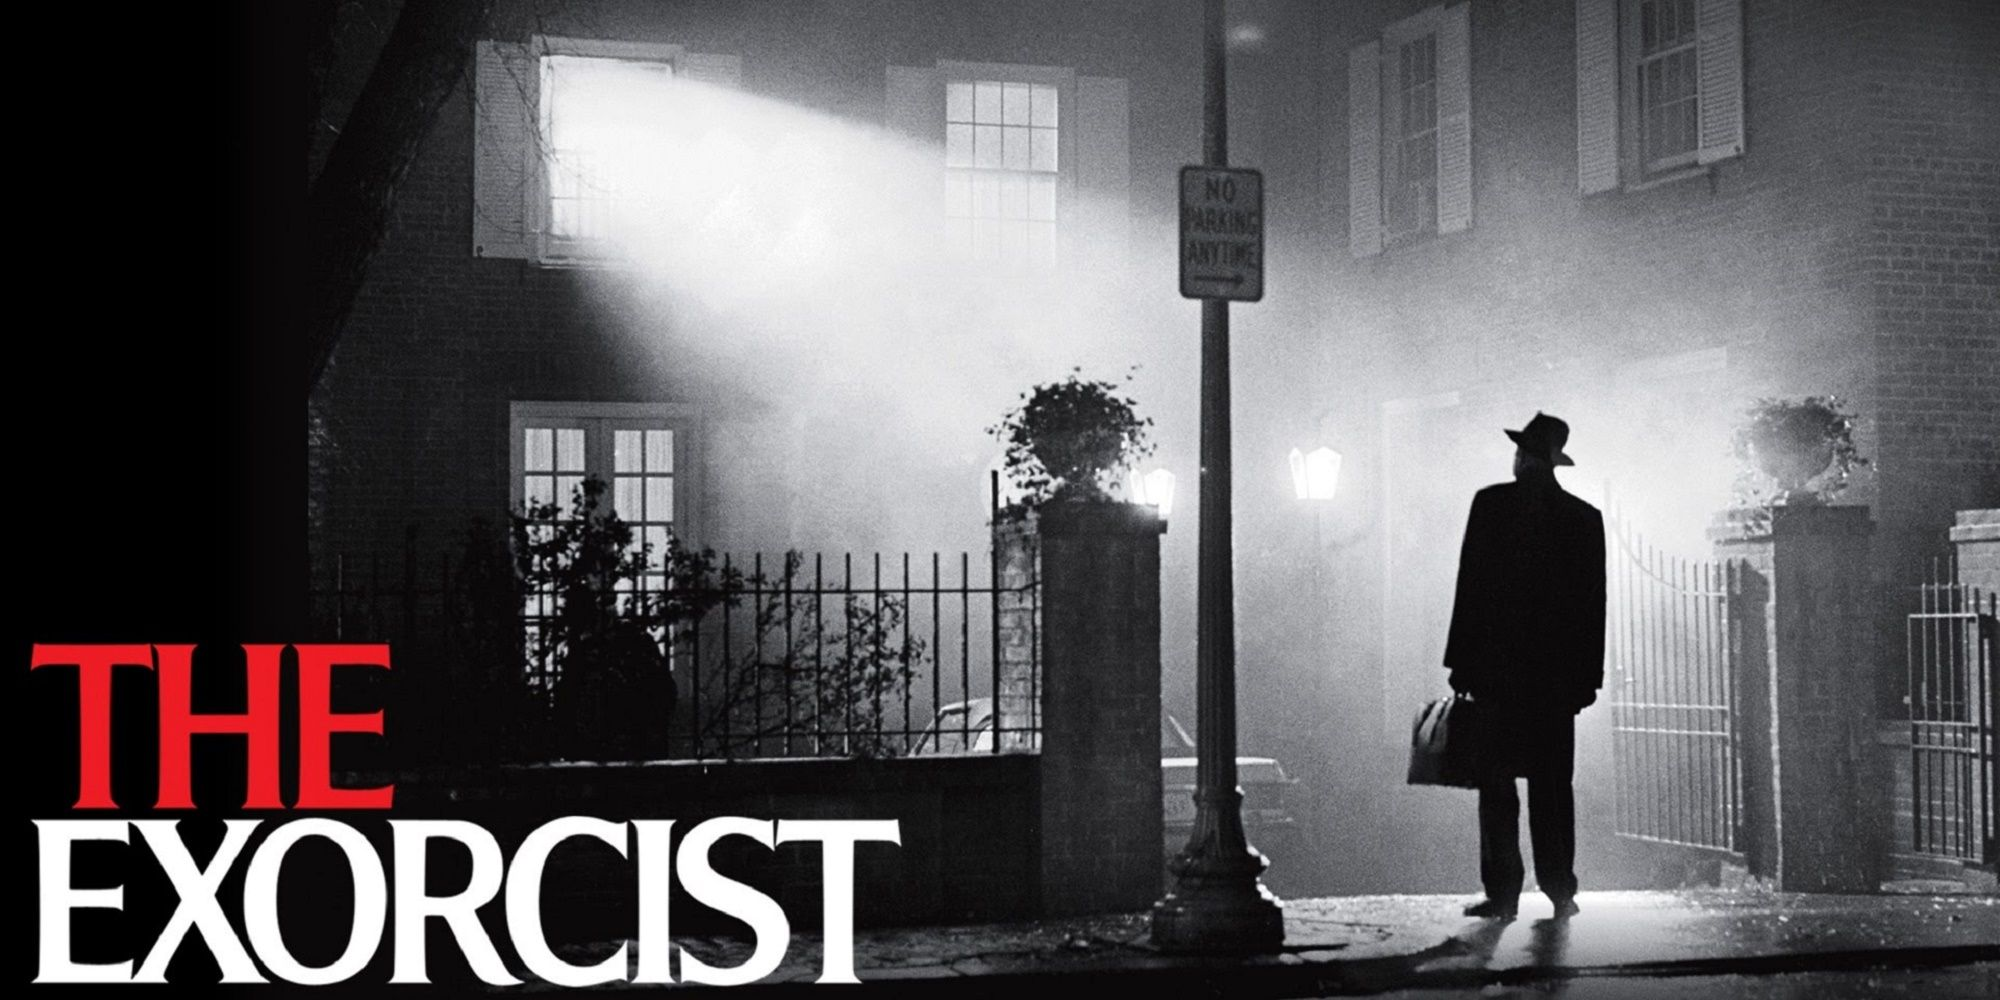 https://becomenzando.files.wordpress.com/2016/10/the-exorcist-trailer-foggy-priest.jpg